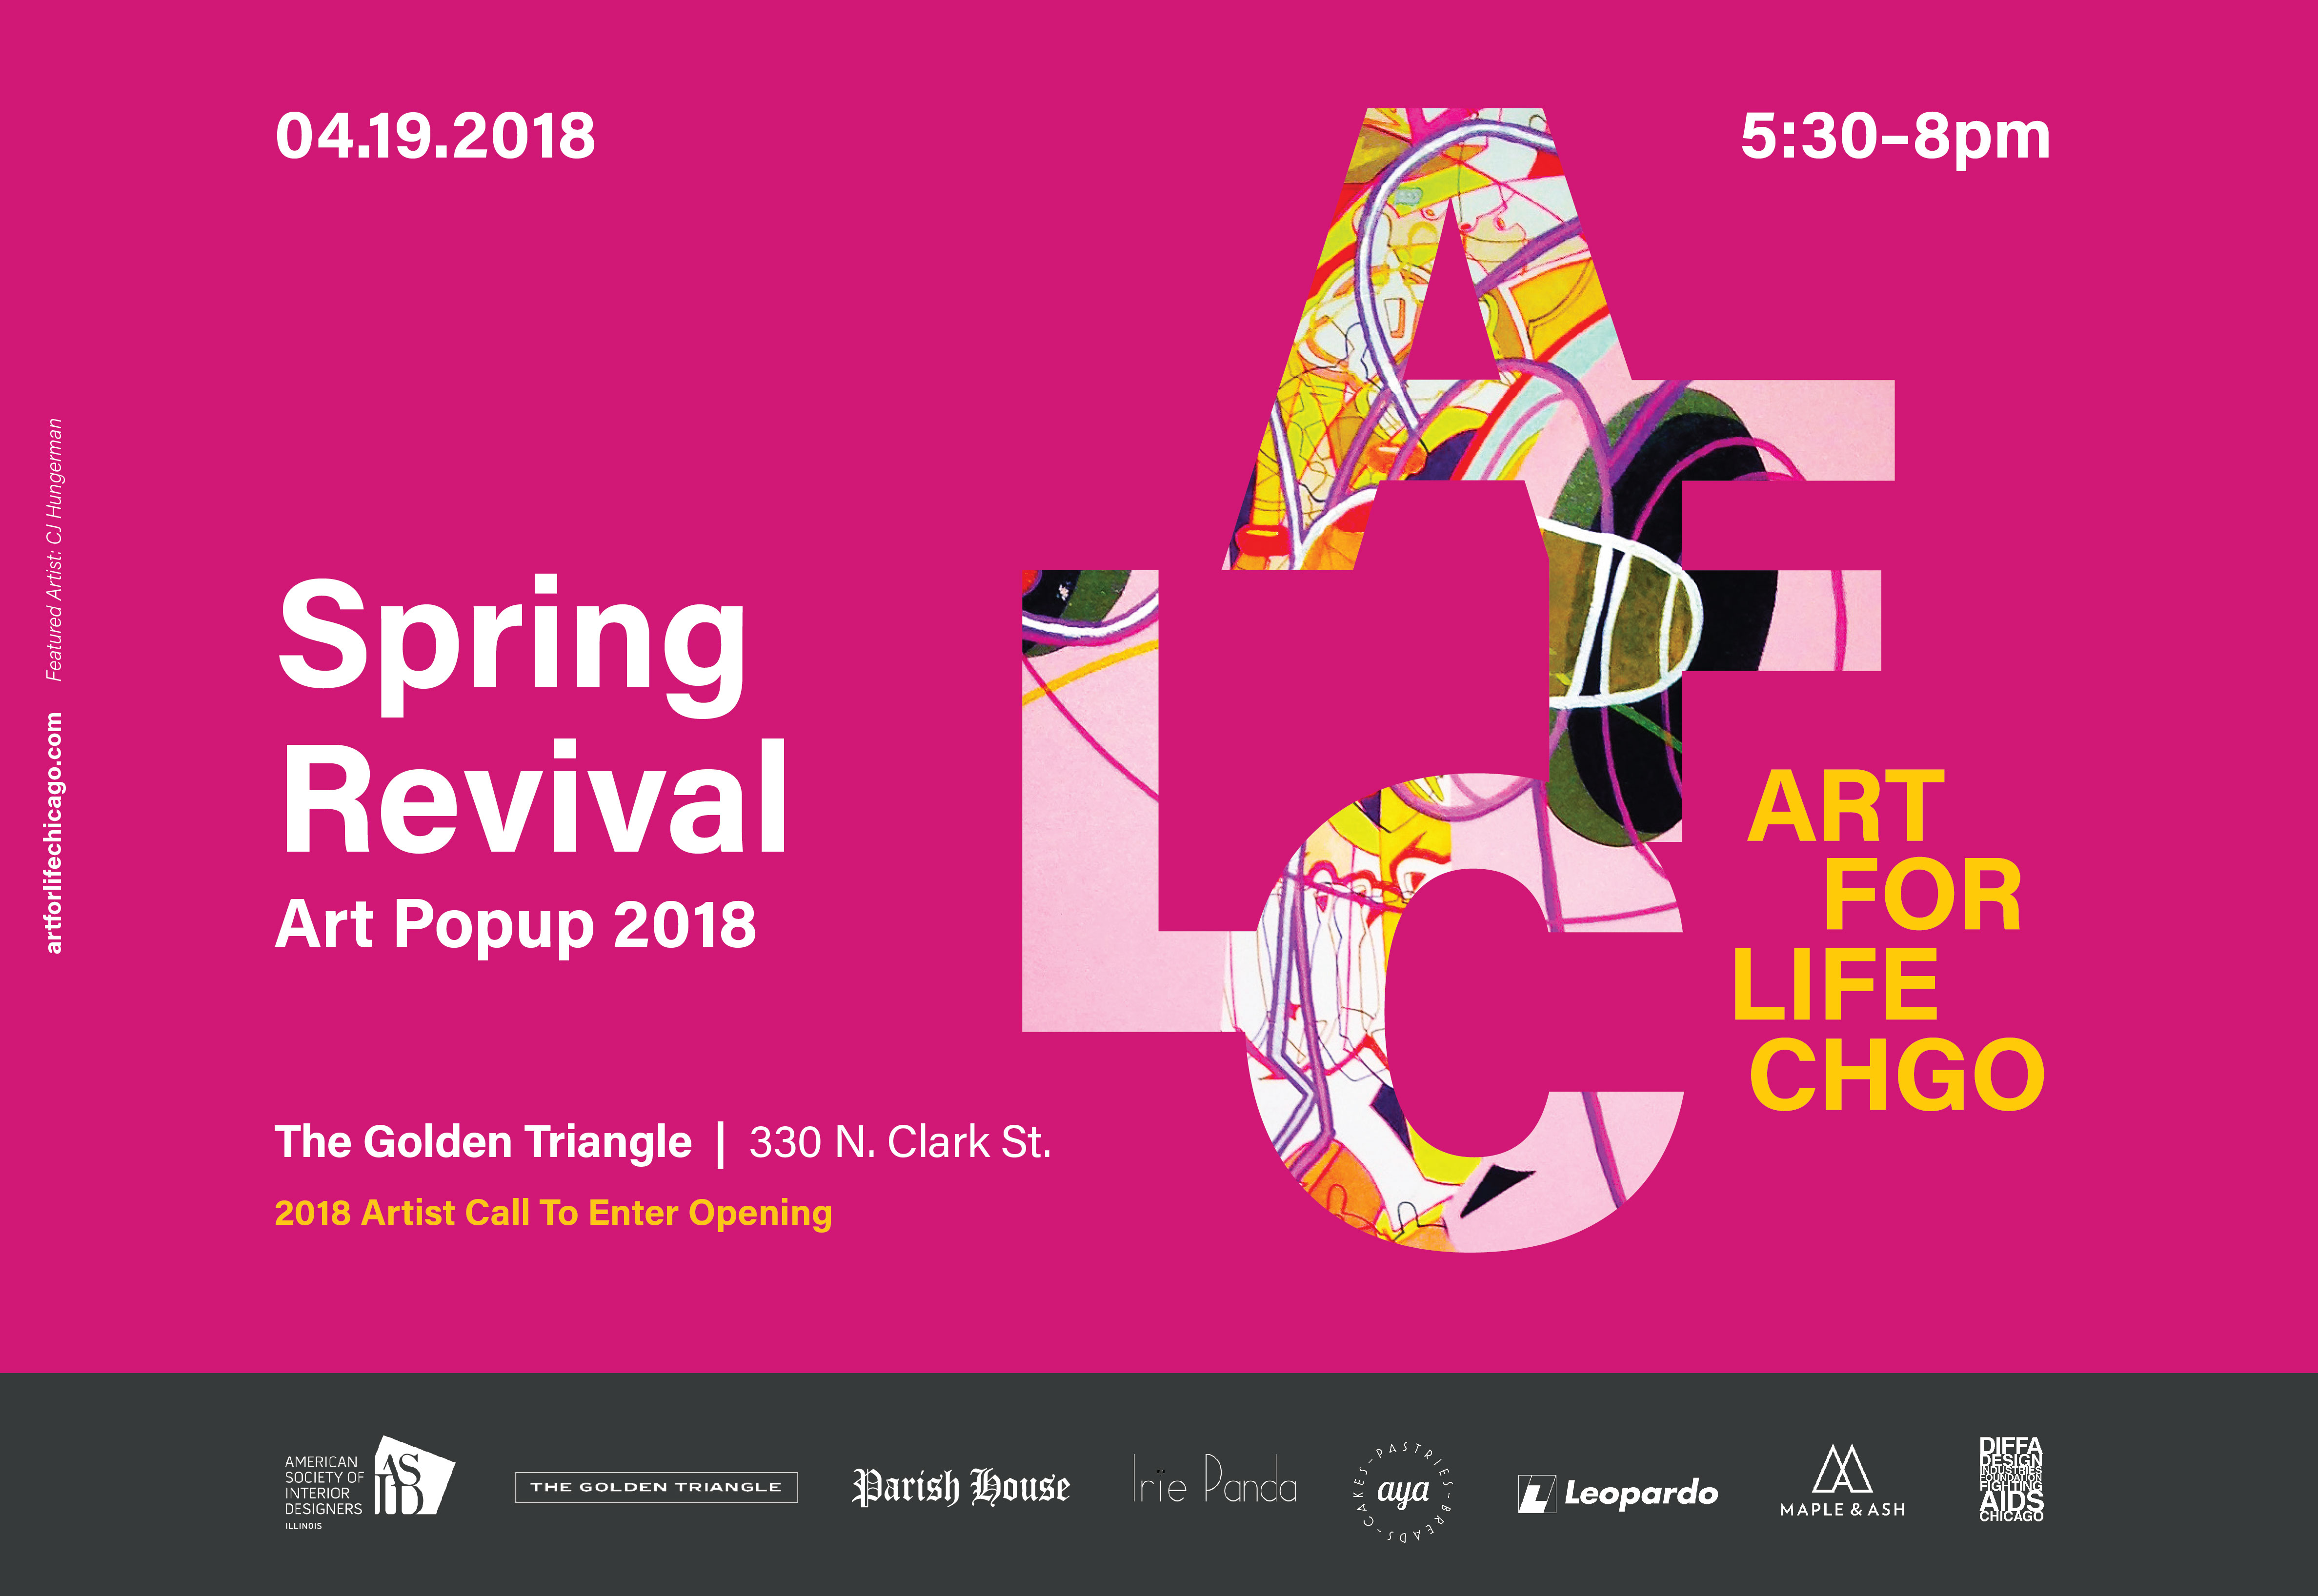 art for life chgo spring revival pop up 2018